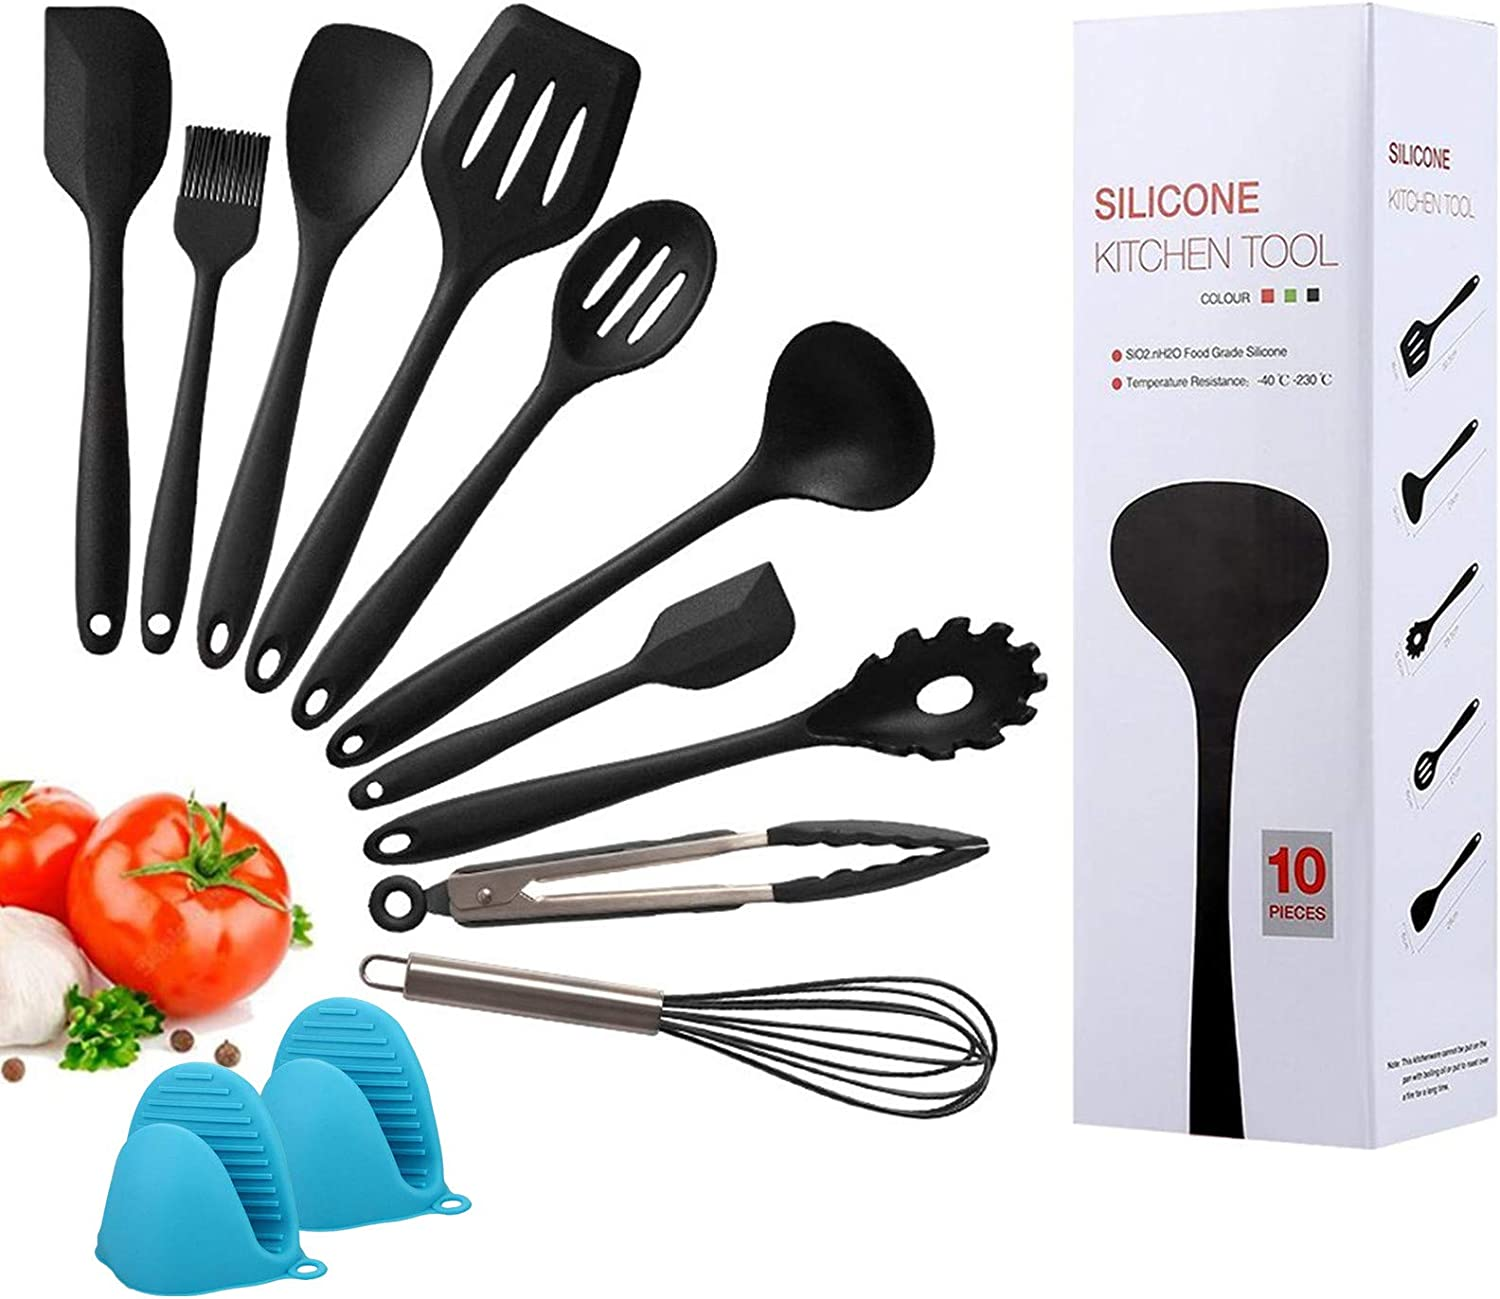 Kitchen Silicone Heat Resistant Cooking Utensil Set 12 Piece,Food Clip Grill Brush Soup Spoon Whisk Scraper Shovel Egg Blender Non Stick Tools Set Environmental Protection Oven Mitts…